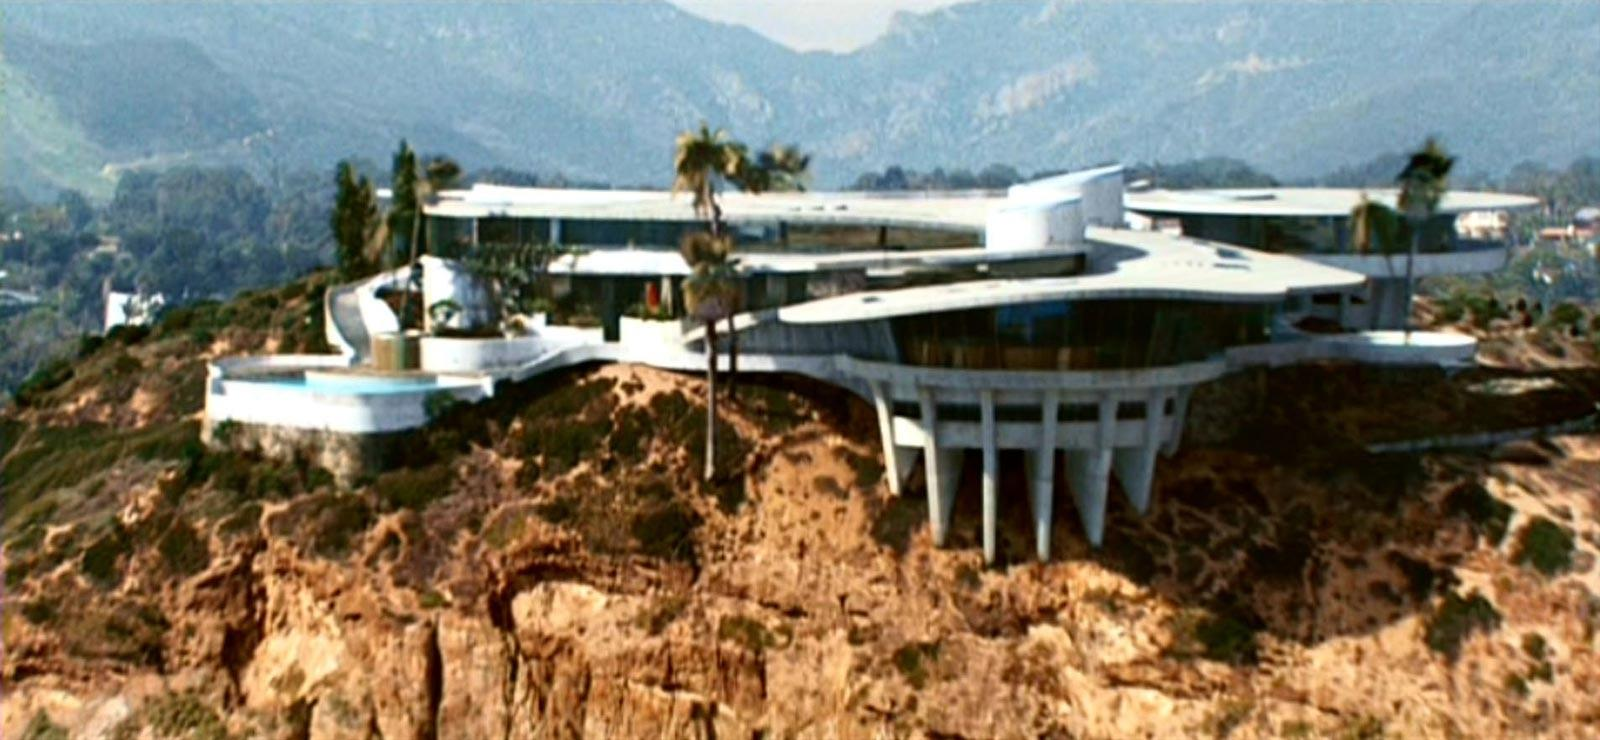 Coolest Fictional Residences Movie History Vh1